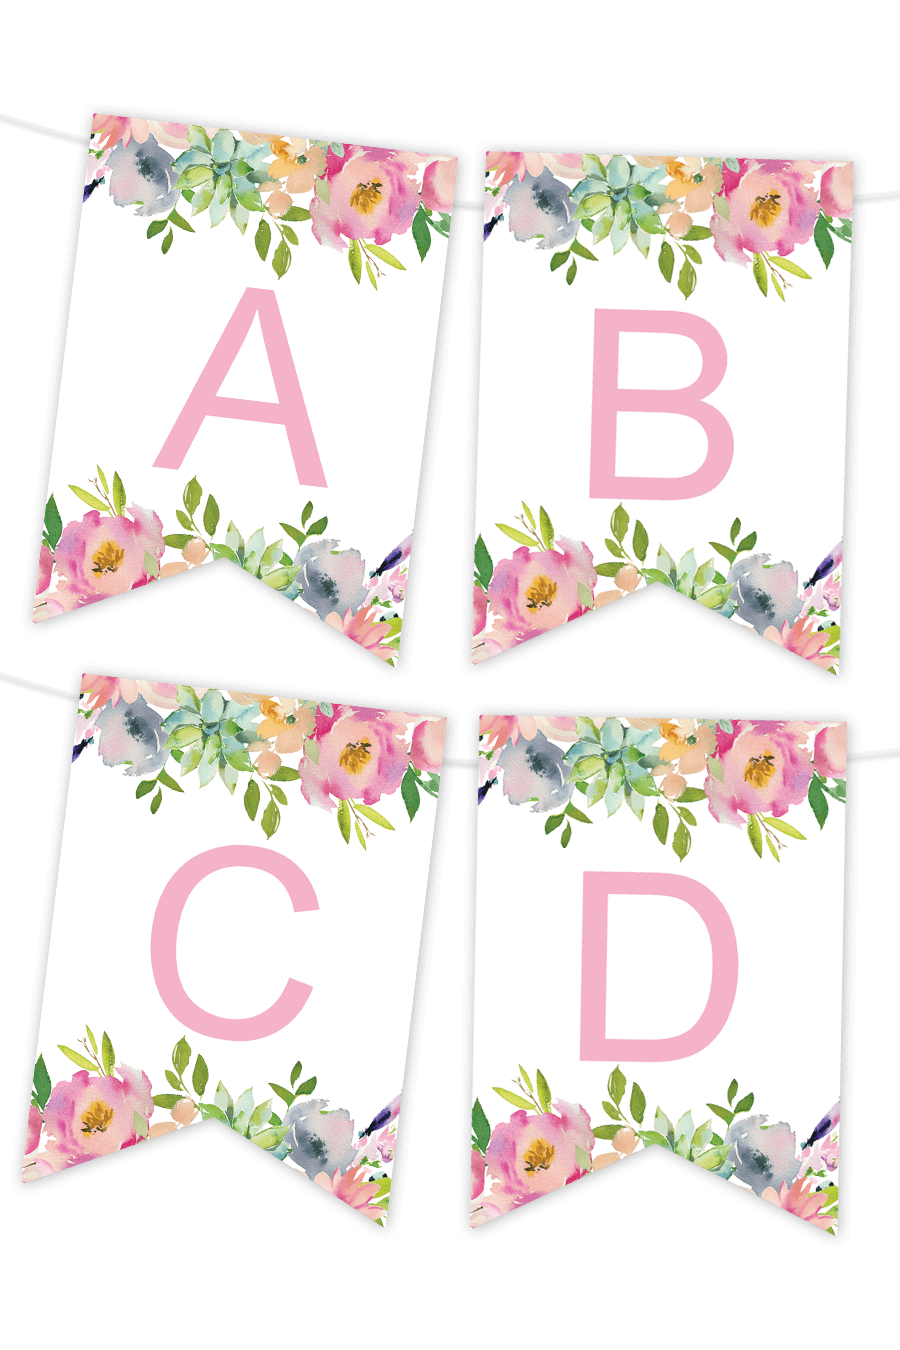 image relating to Free Printable Banner Templates referred to as Printable Banners - Create Your Personal Banners With Our Printable